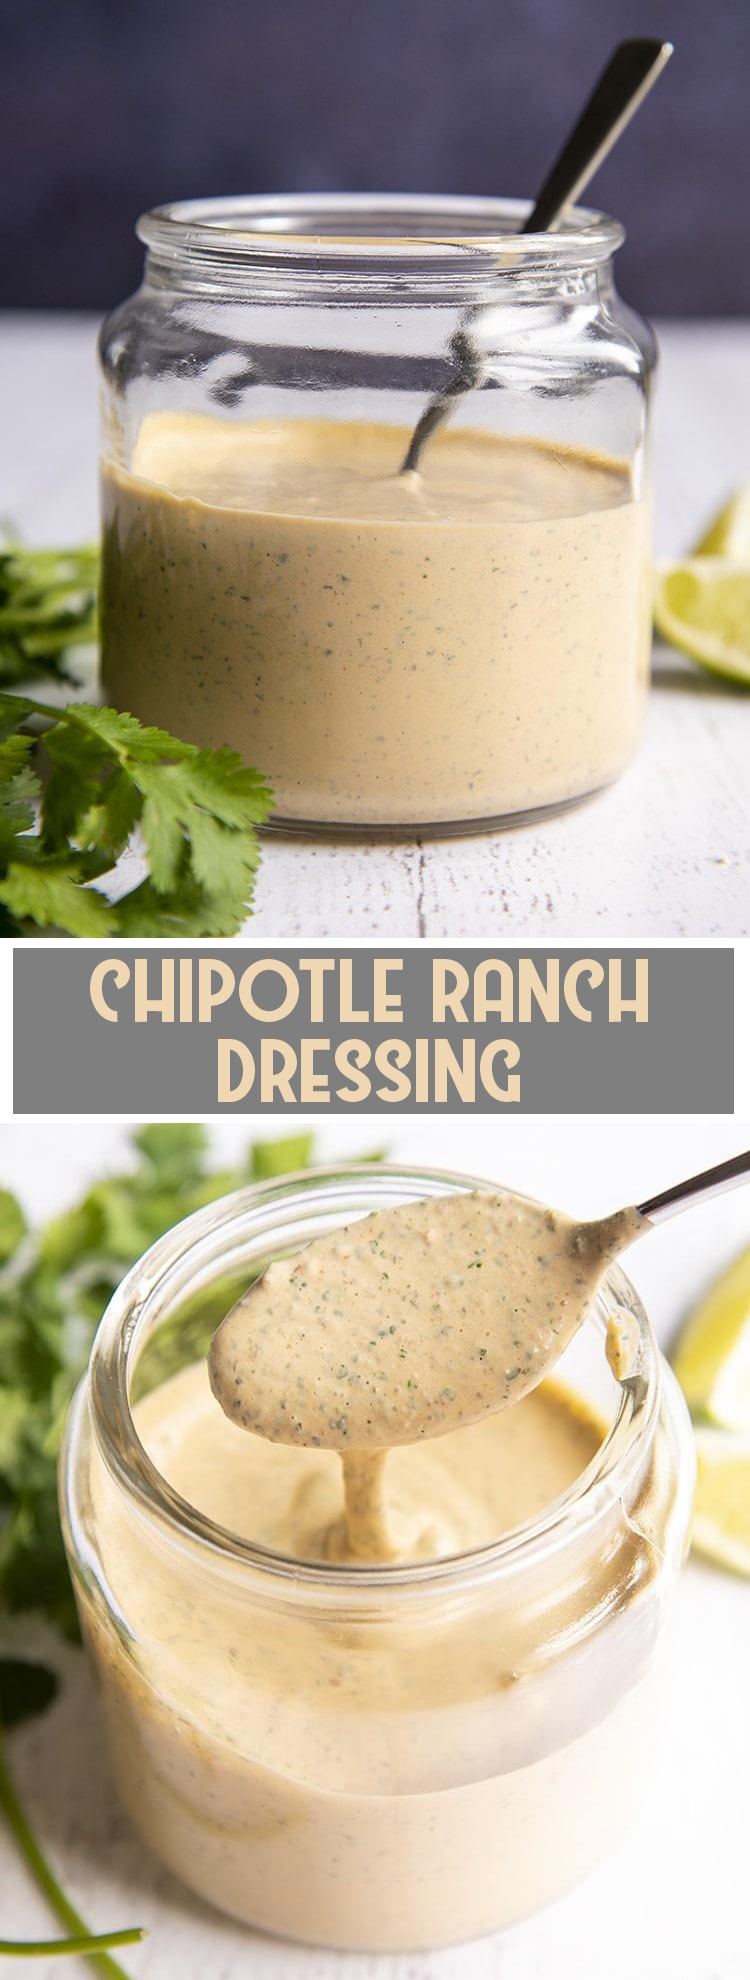 Chipotle Ranch Dressing in a jar with text overlay for pinterest